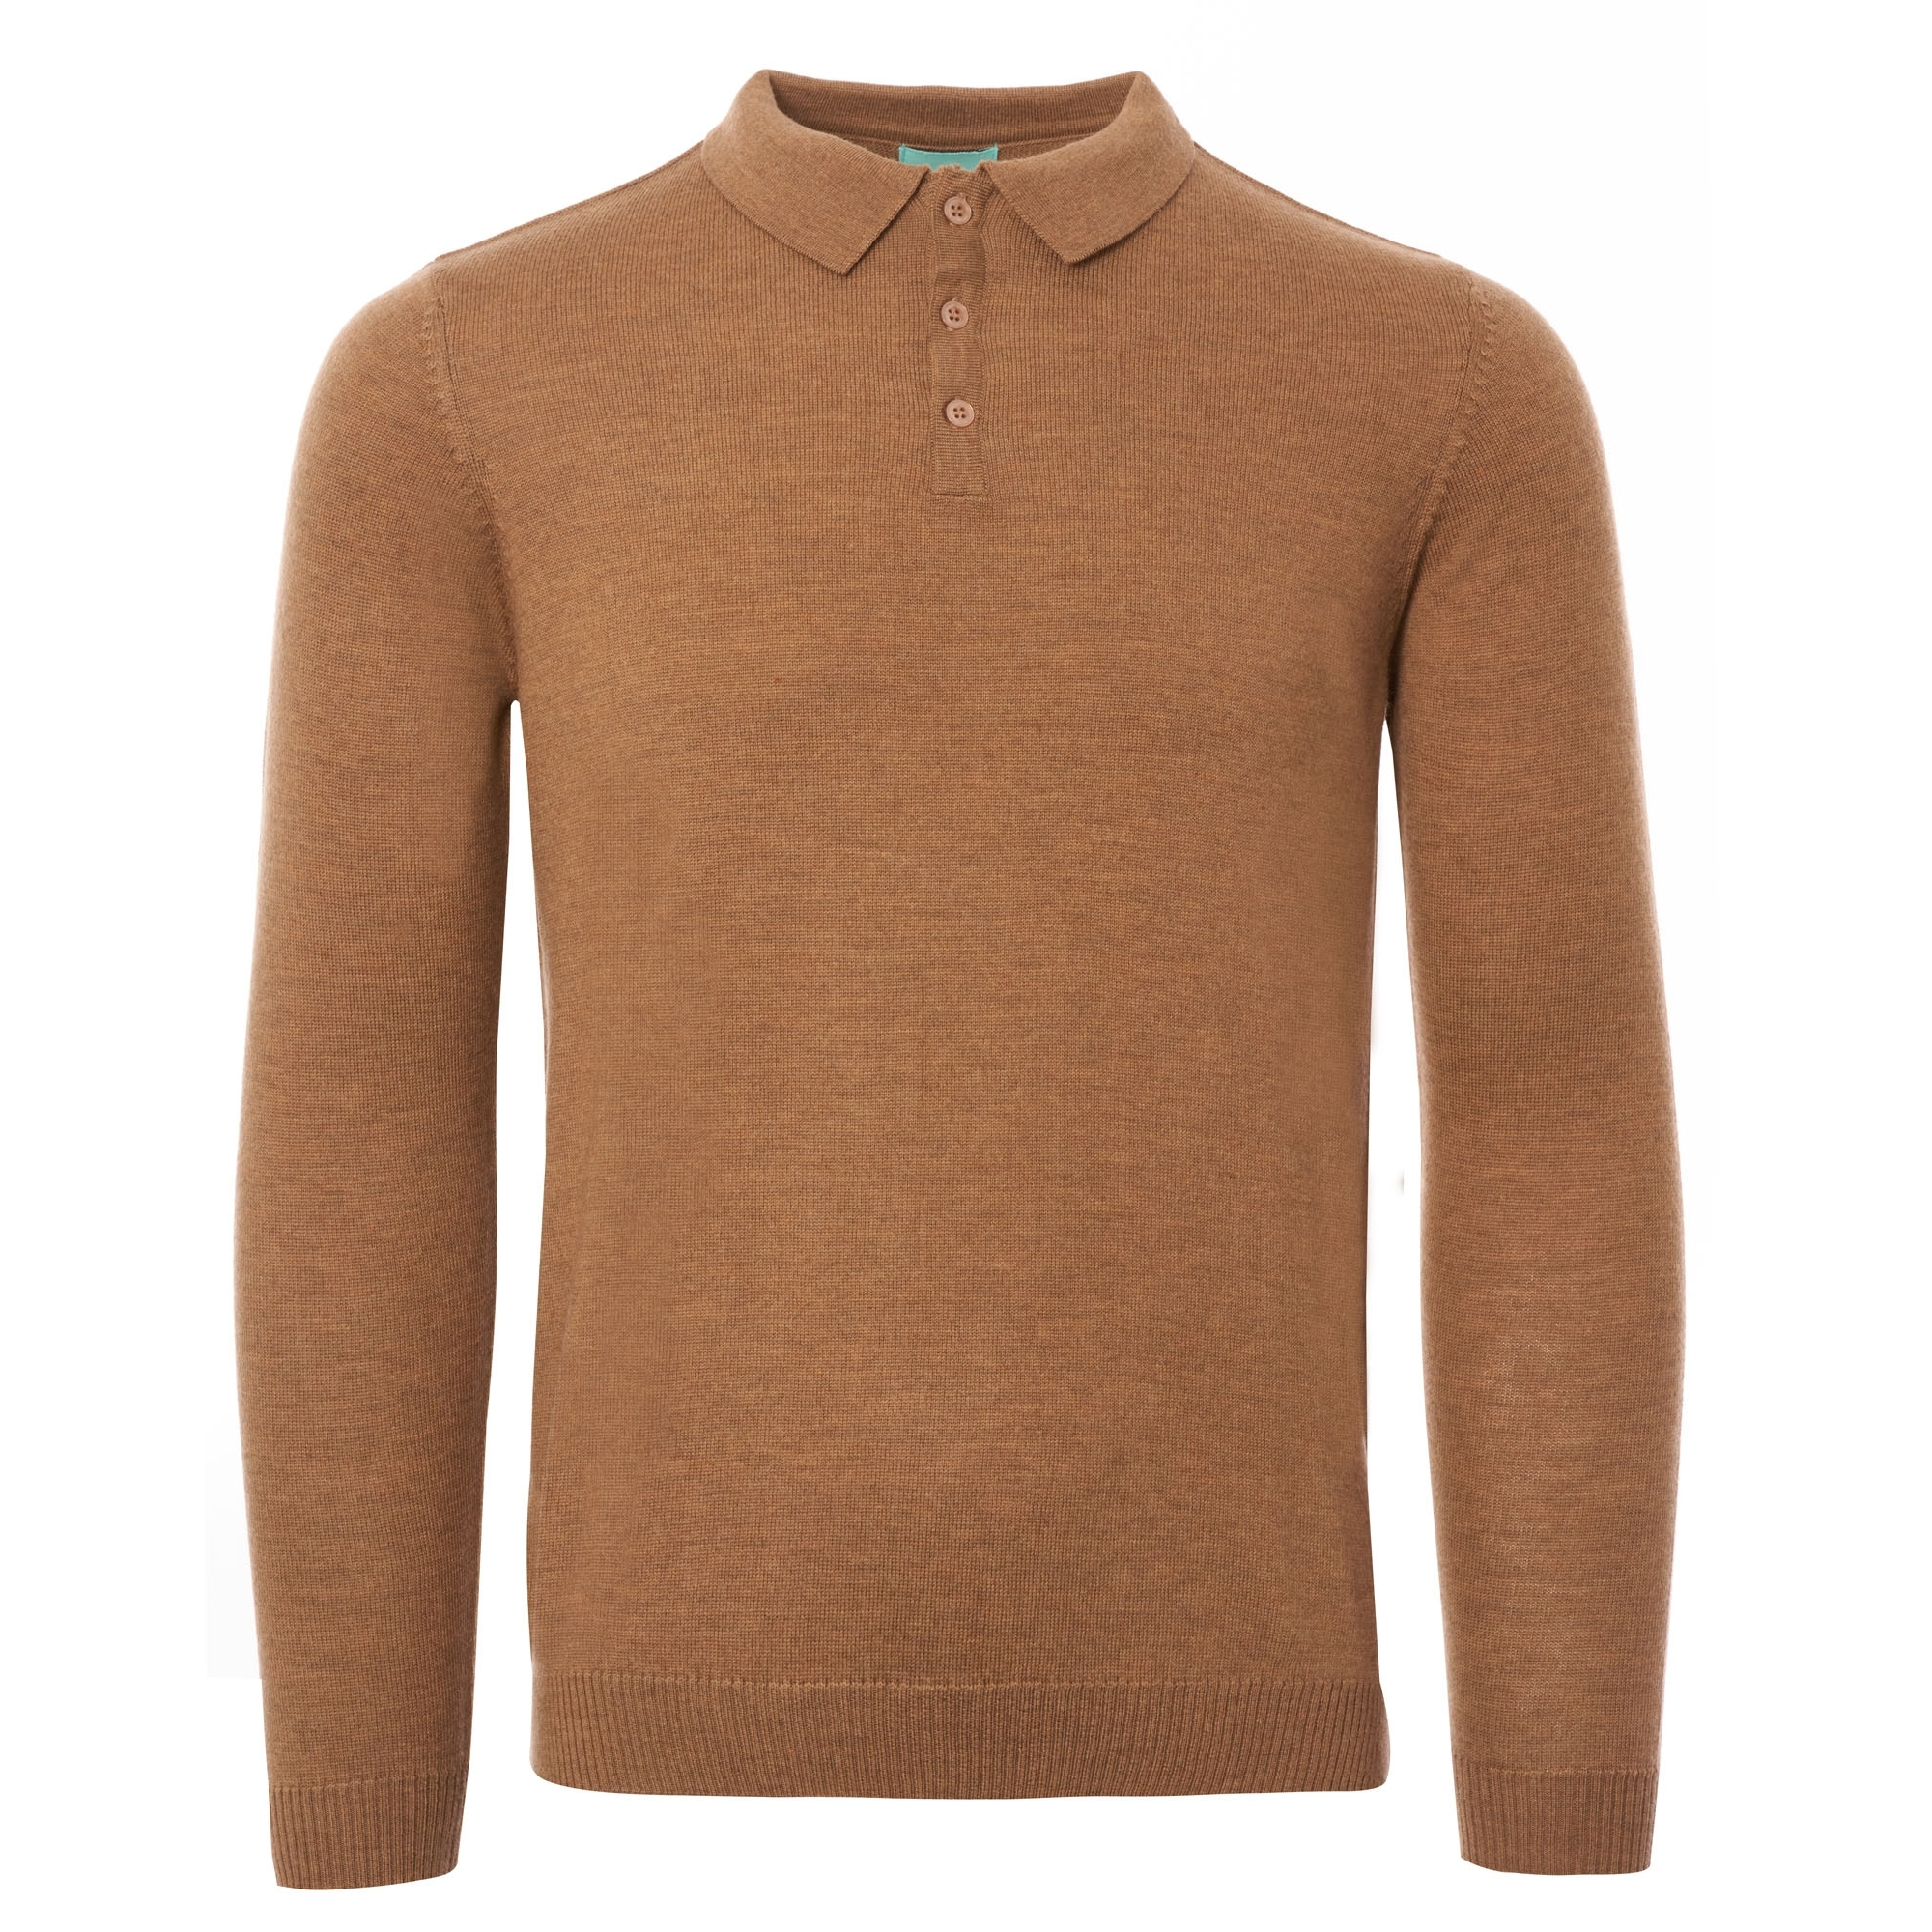 c496dfde1 Long Sleeve Knitted Polo Shirt - Camel